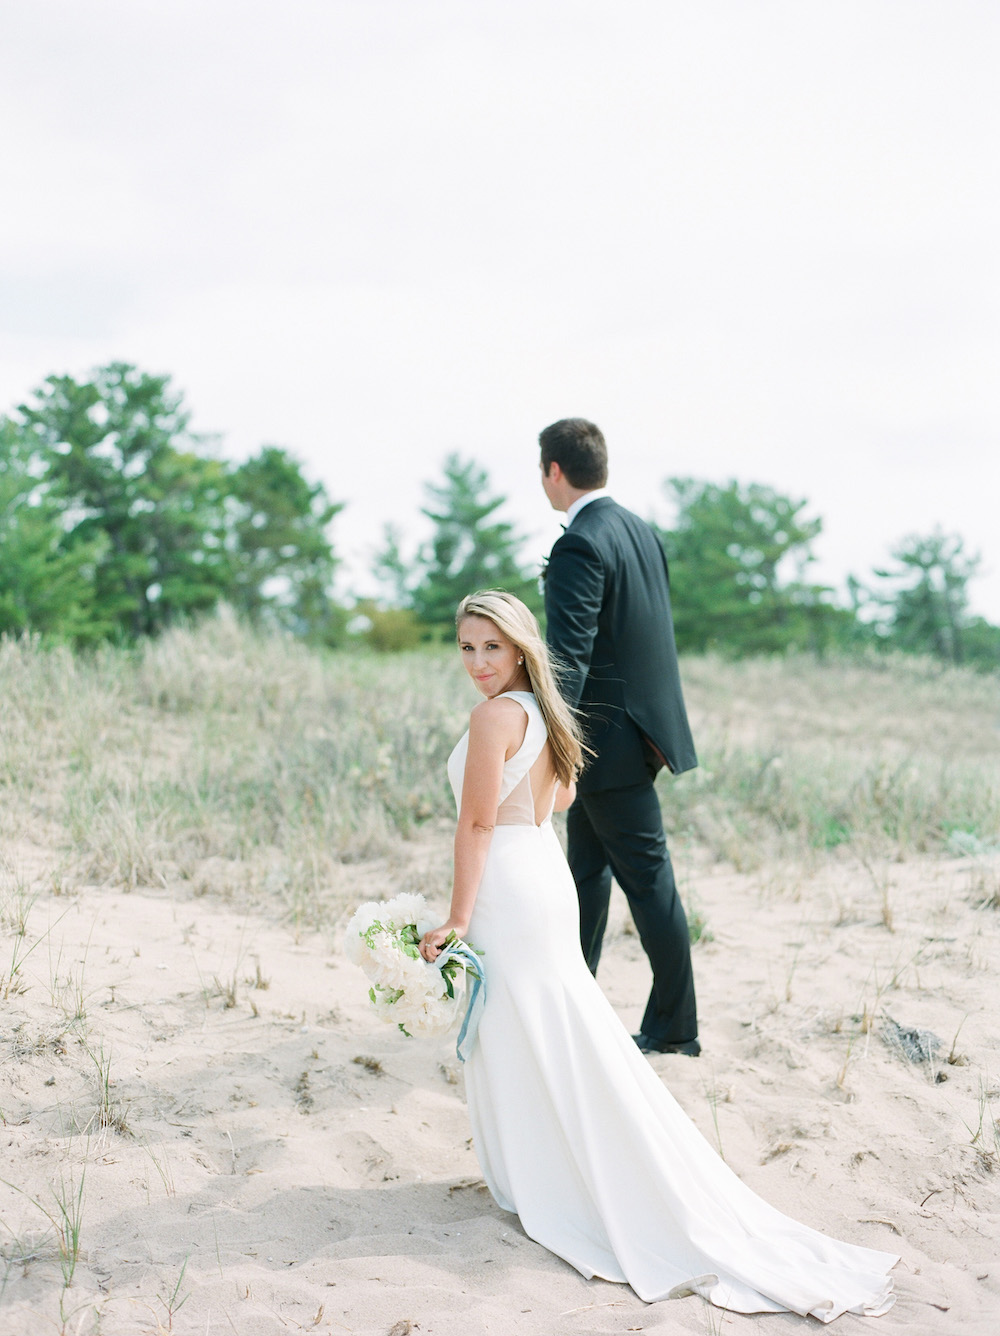 Couple on the beach during their Glen Arbor, Michigan wedding